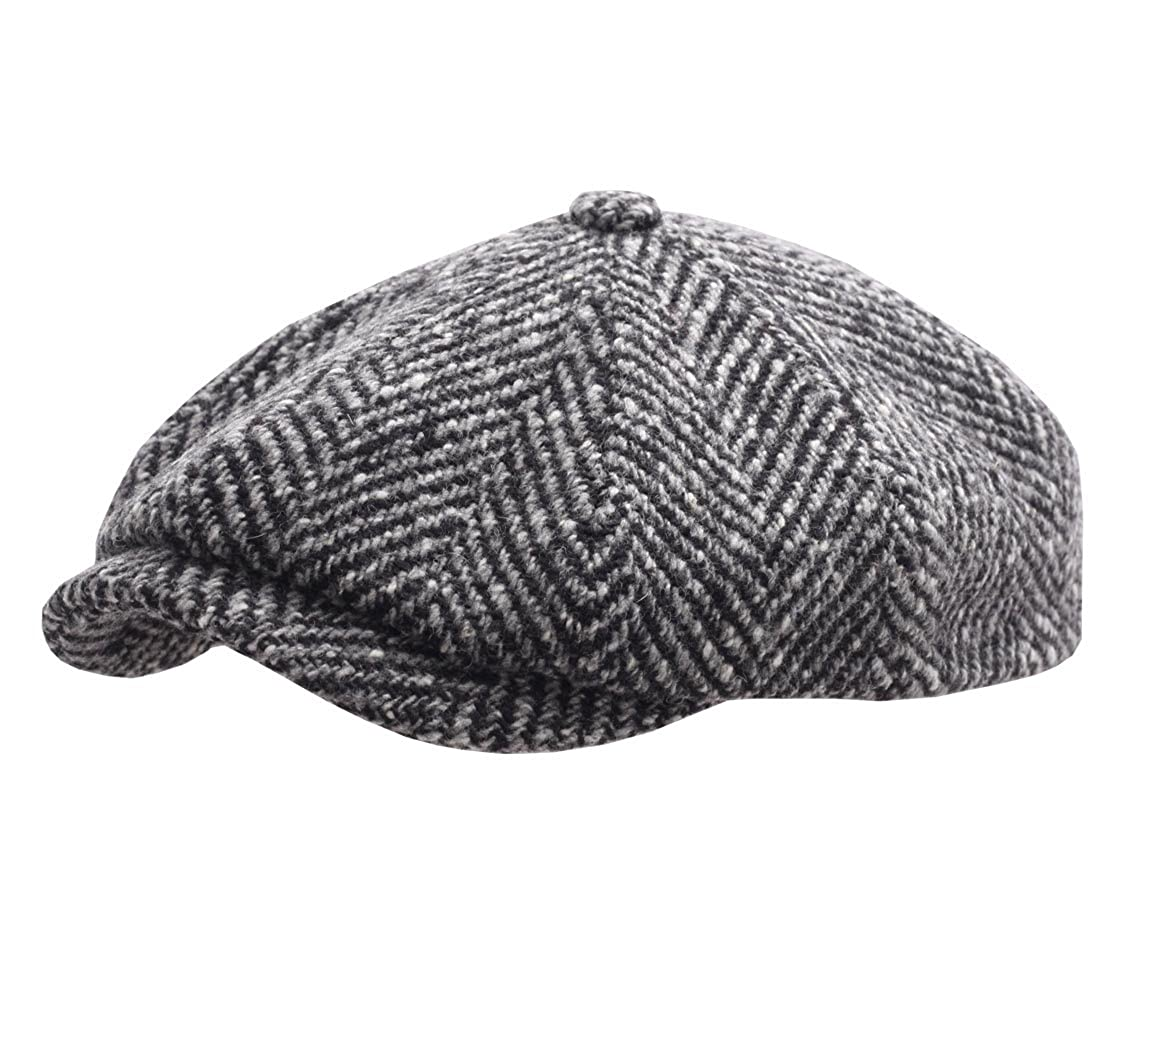 Stetson Men s Hatteras Herringbone Newsboy Cap at Amazon Men s Clothing  store  ead2f94483b